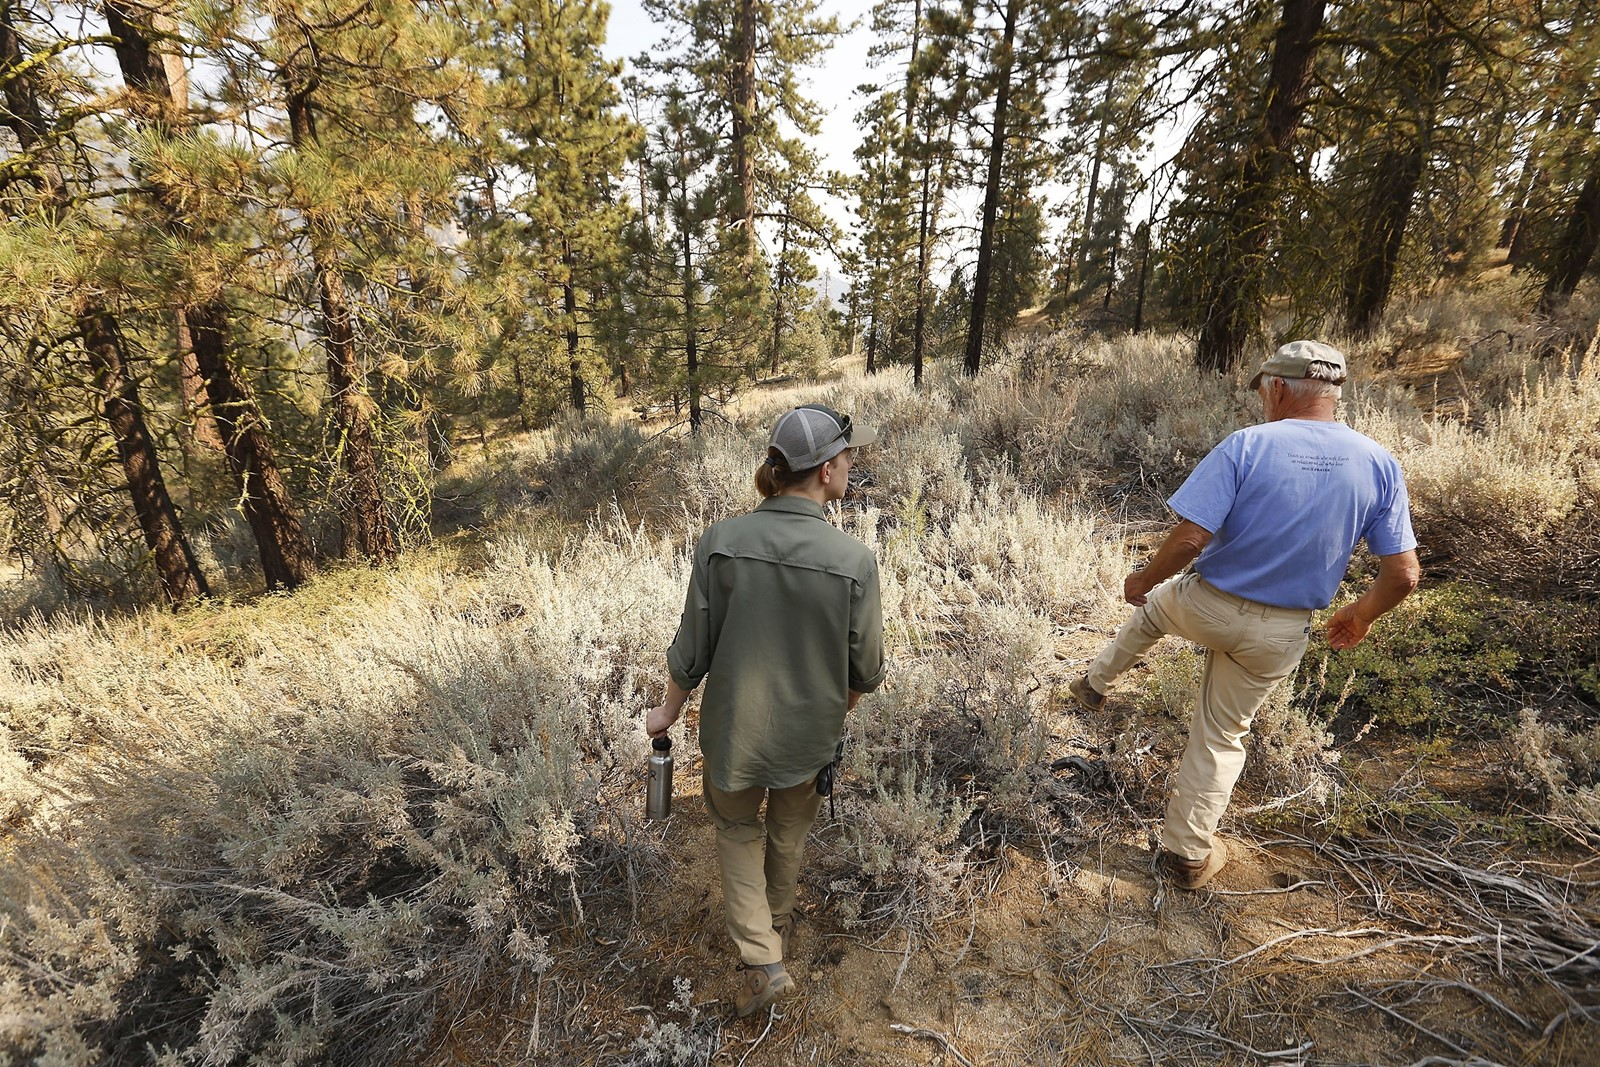 Bryant Baker, left, of Los Padres Forest Watch, and naturalist James Lowery hike along Tecuya Ridge. — Photograph: Al Seib/Los Angeles Times.